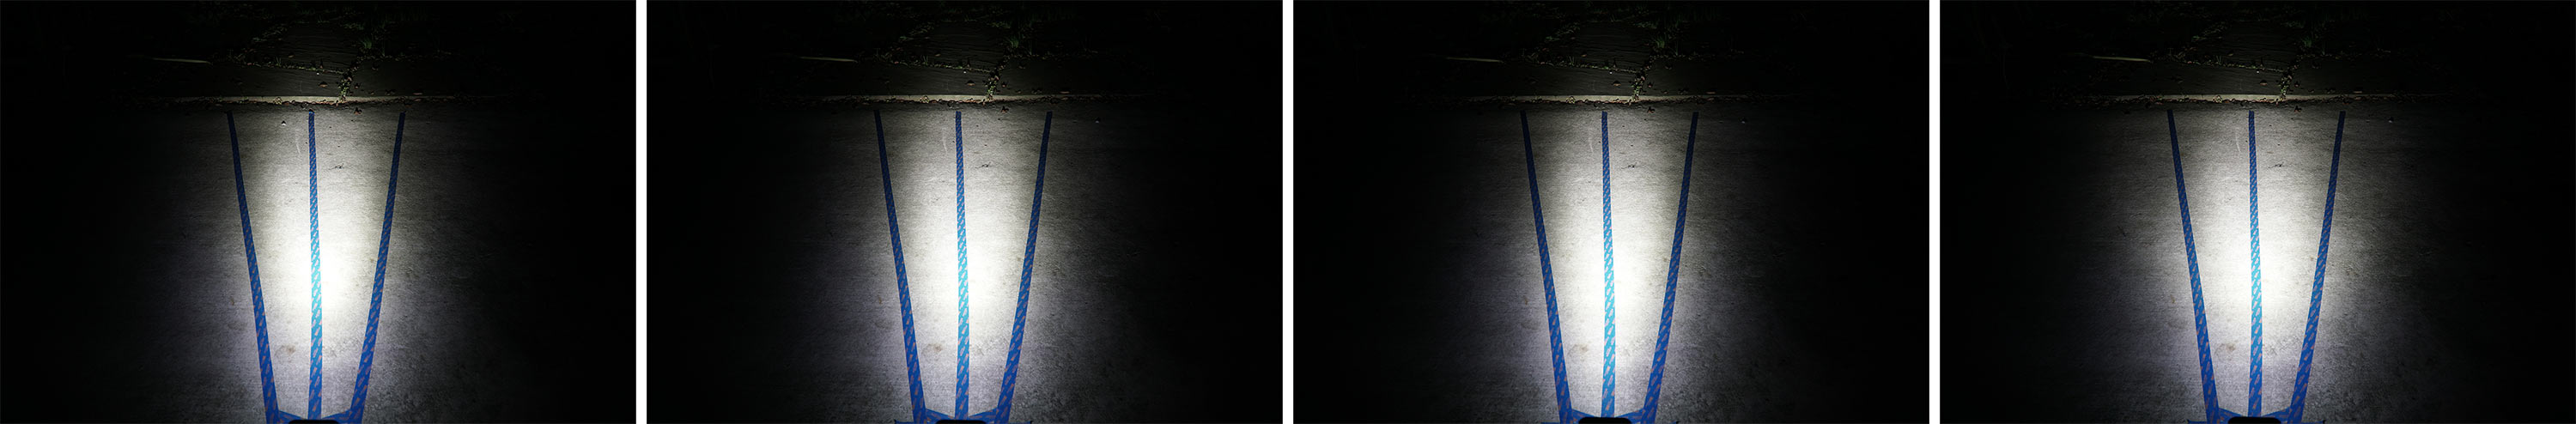 side by side comparison of gloworm xsv beam patterns with each lens optic installed